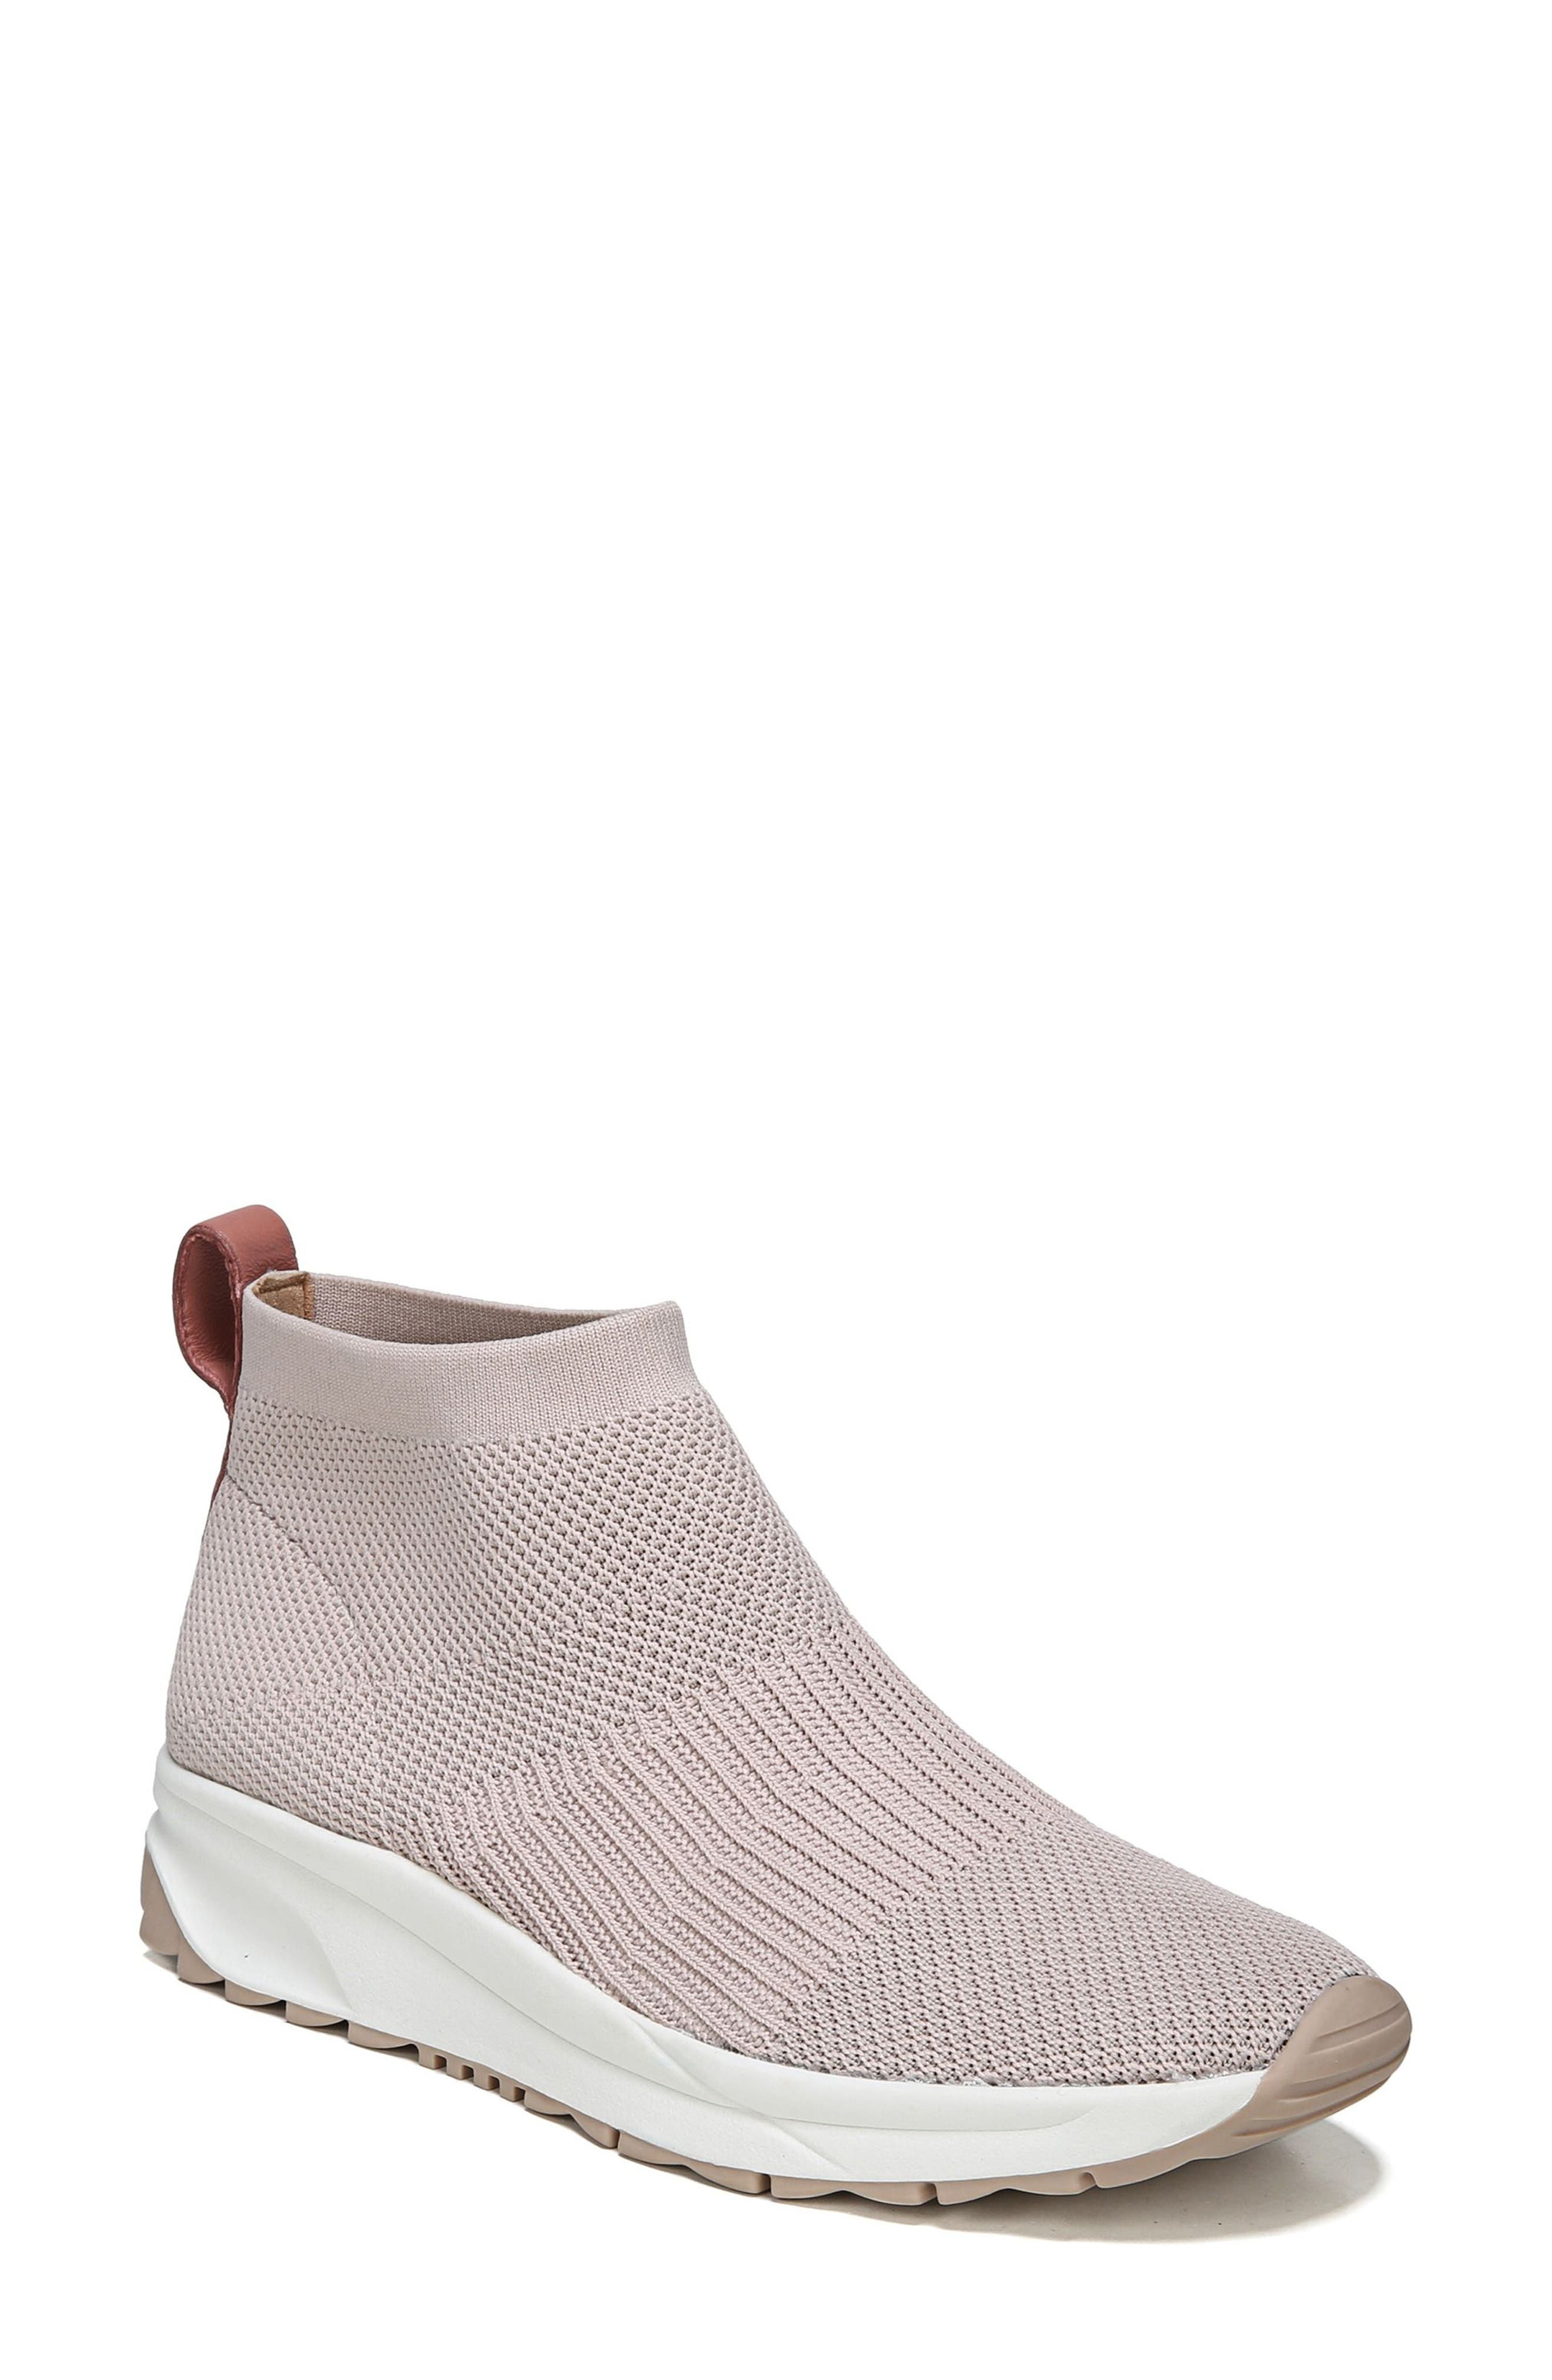 Selena Sneaker Boot,                         Main,                         color, Pink Stretch Fabric